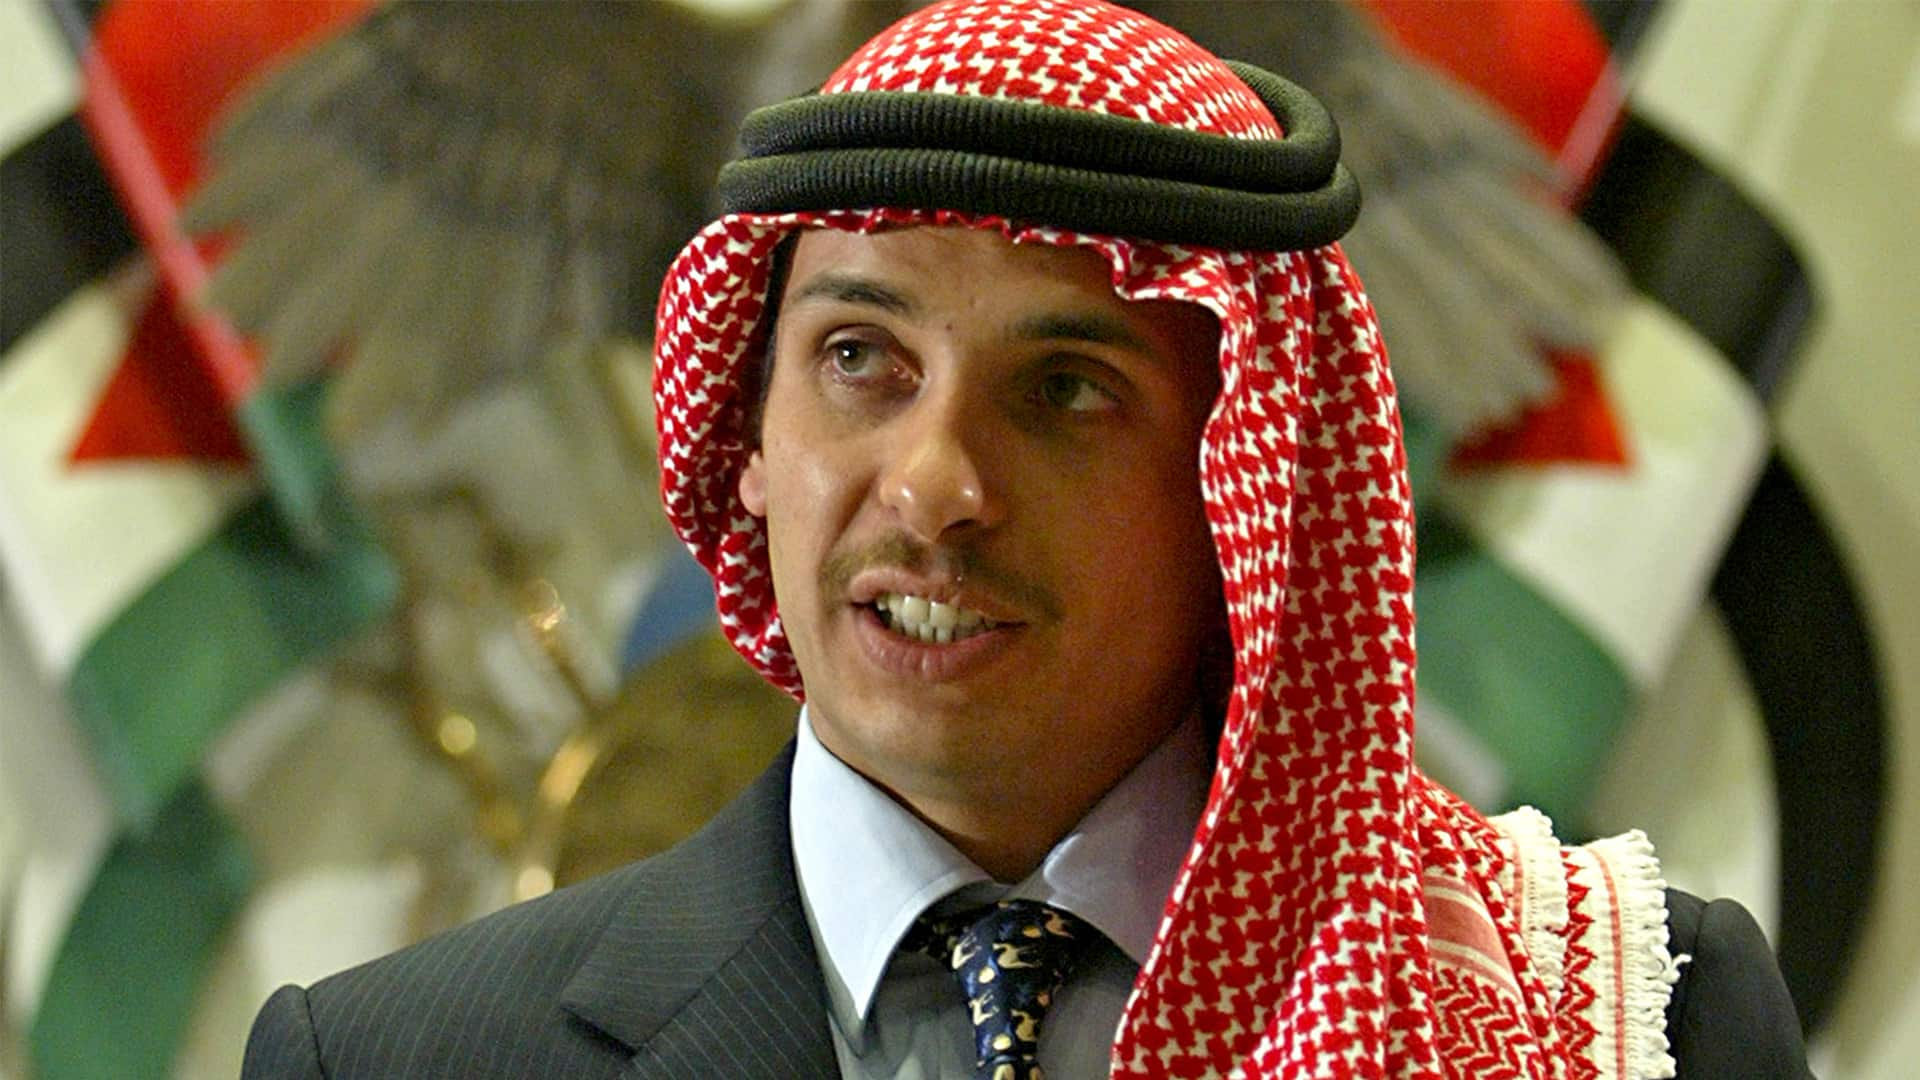 Jordanian prince accused in anti-government plot The National1 day ago2:02